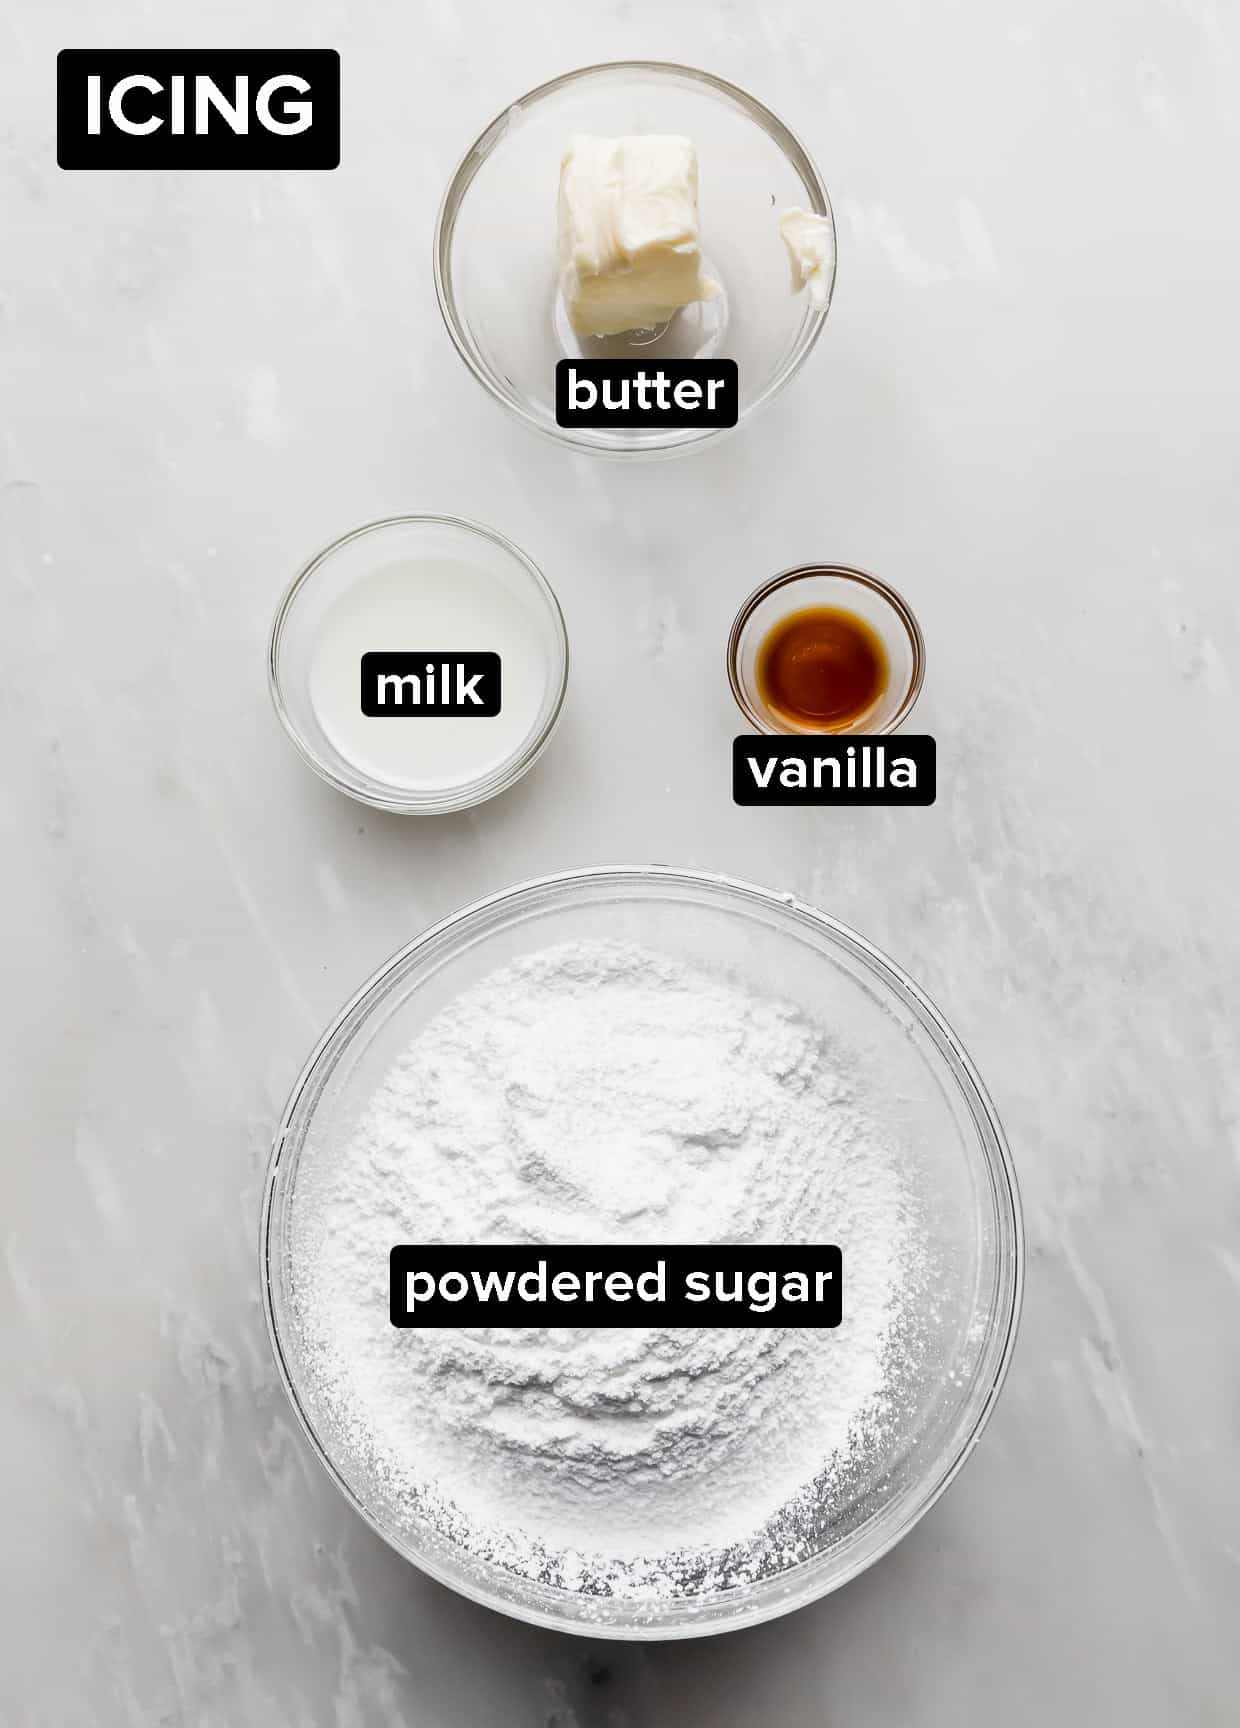 Ingredients used to make cinnamon roll icing on a white background.